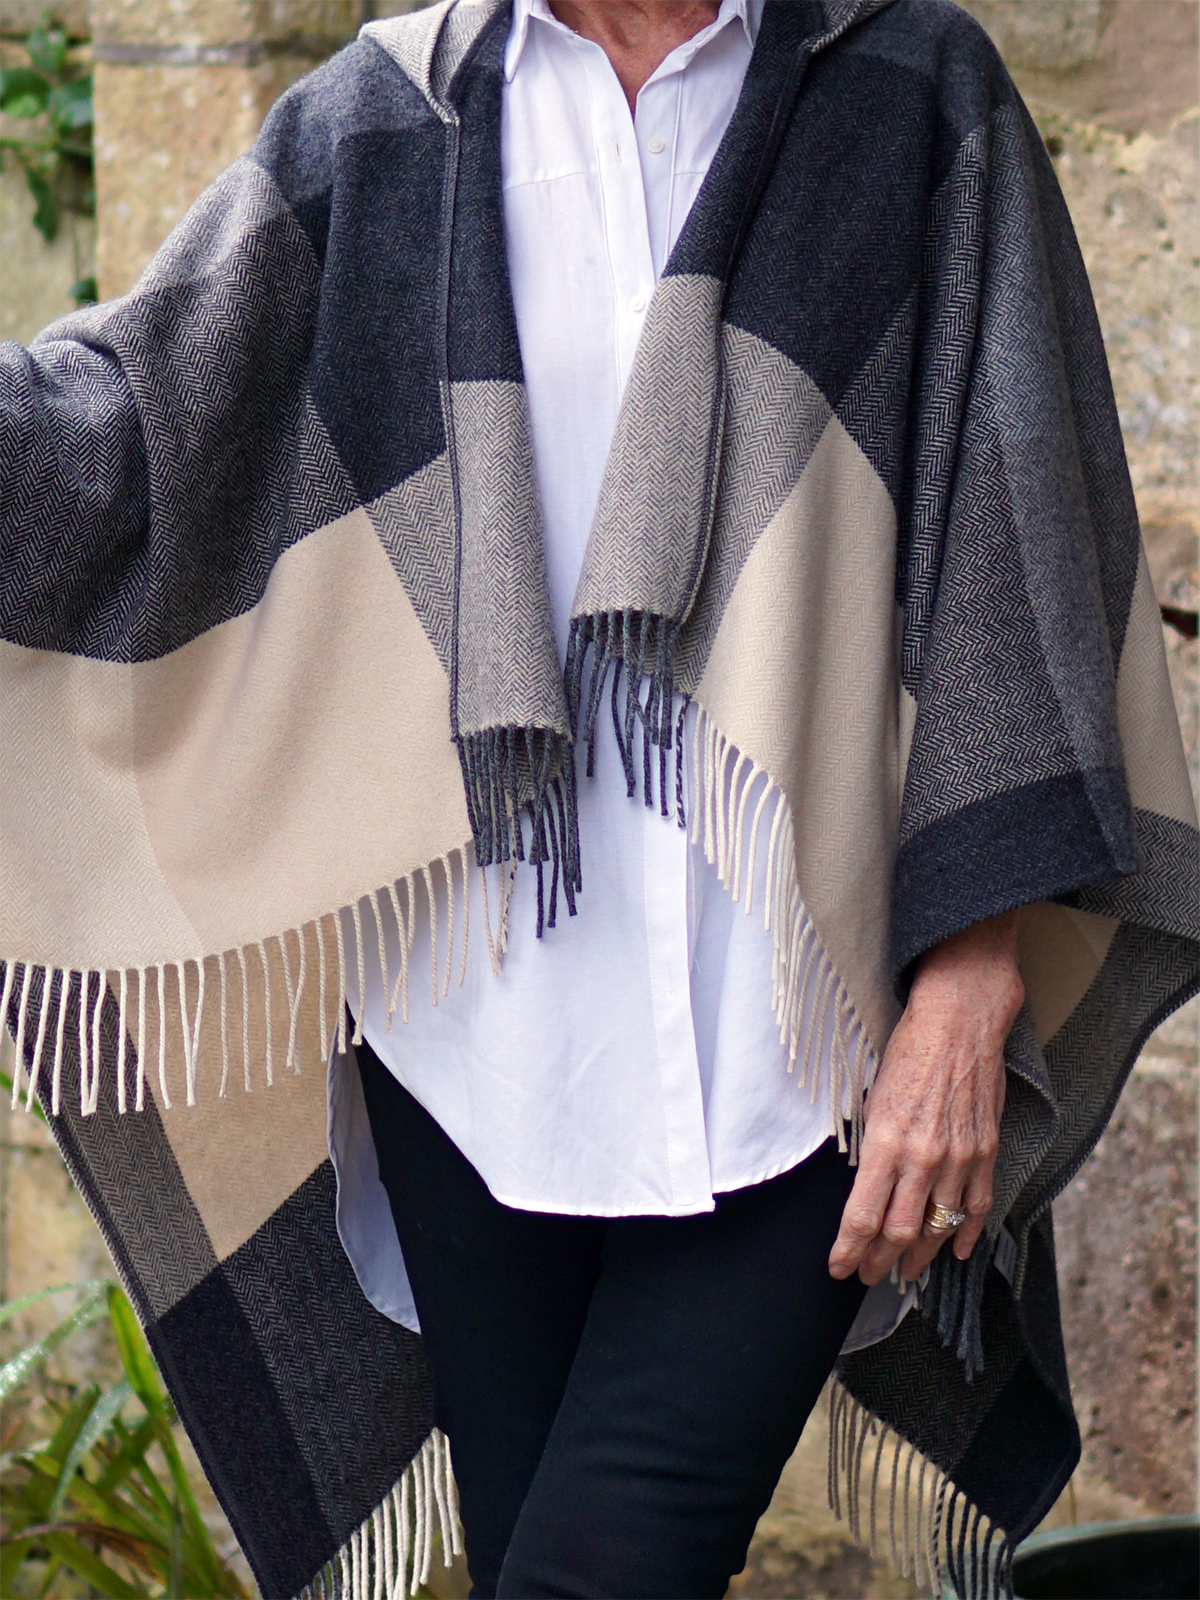 how to, what to wear, 3 ways to wear, hourglass shape, shirt, button up, long shirt, collared shirt, sleeveless shirt, denim, seasoned fashionista, over 50, over 60, cape, blanket scarf